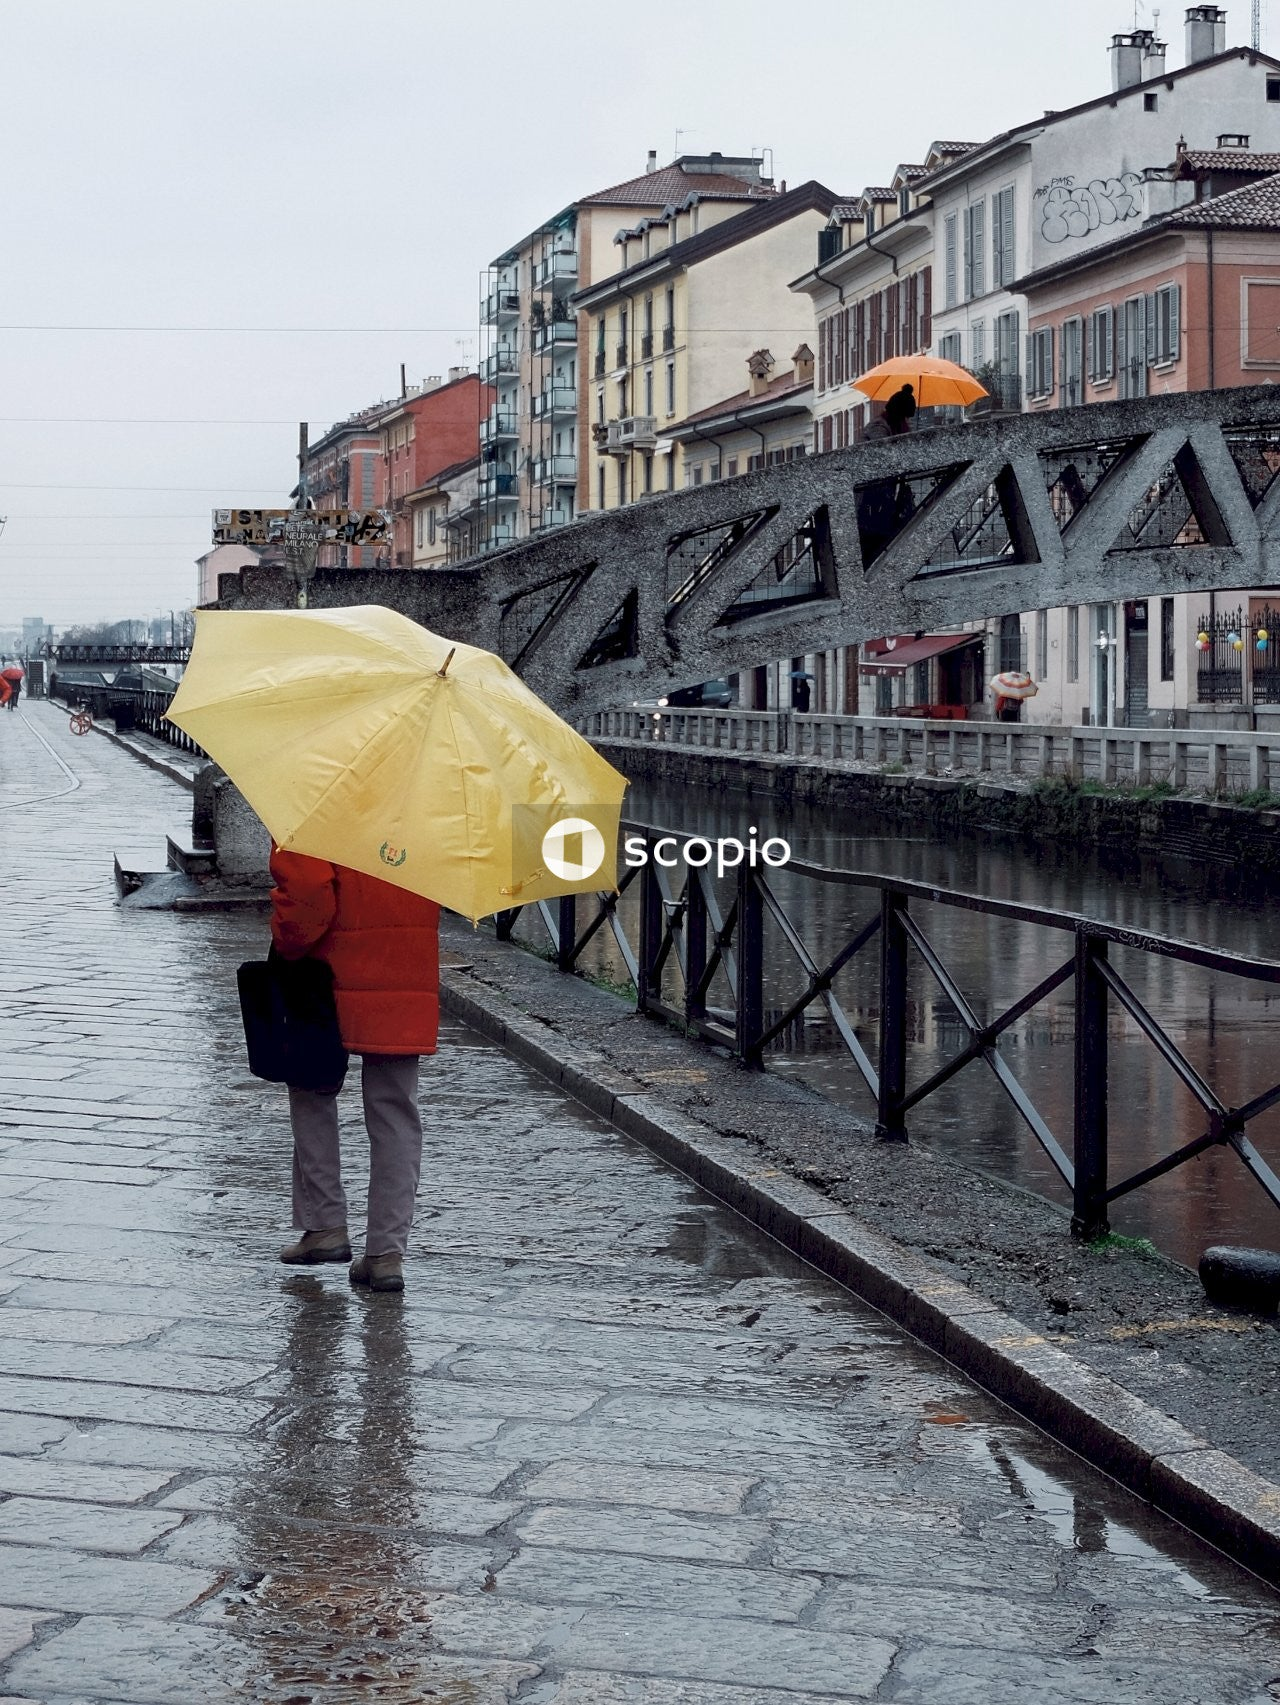 Woman in red coat holding yellow umbrella walking on sidewalk